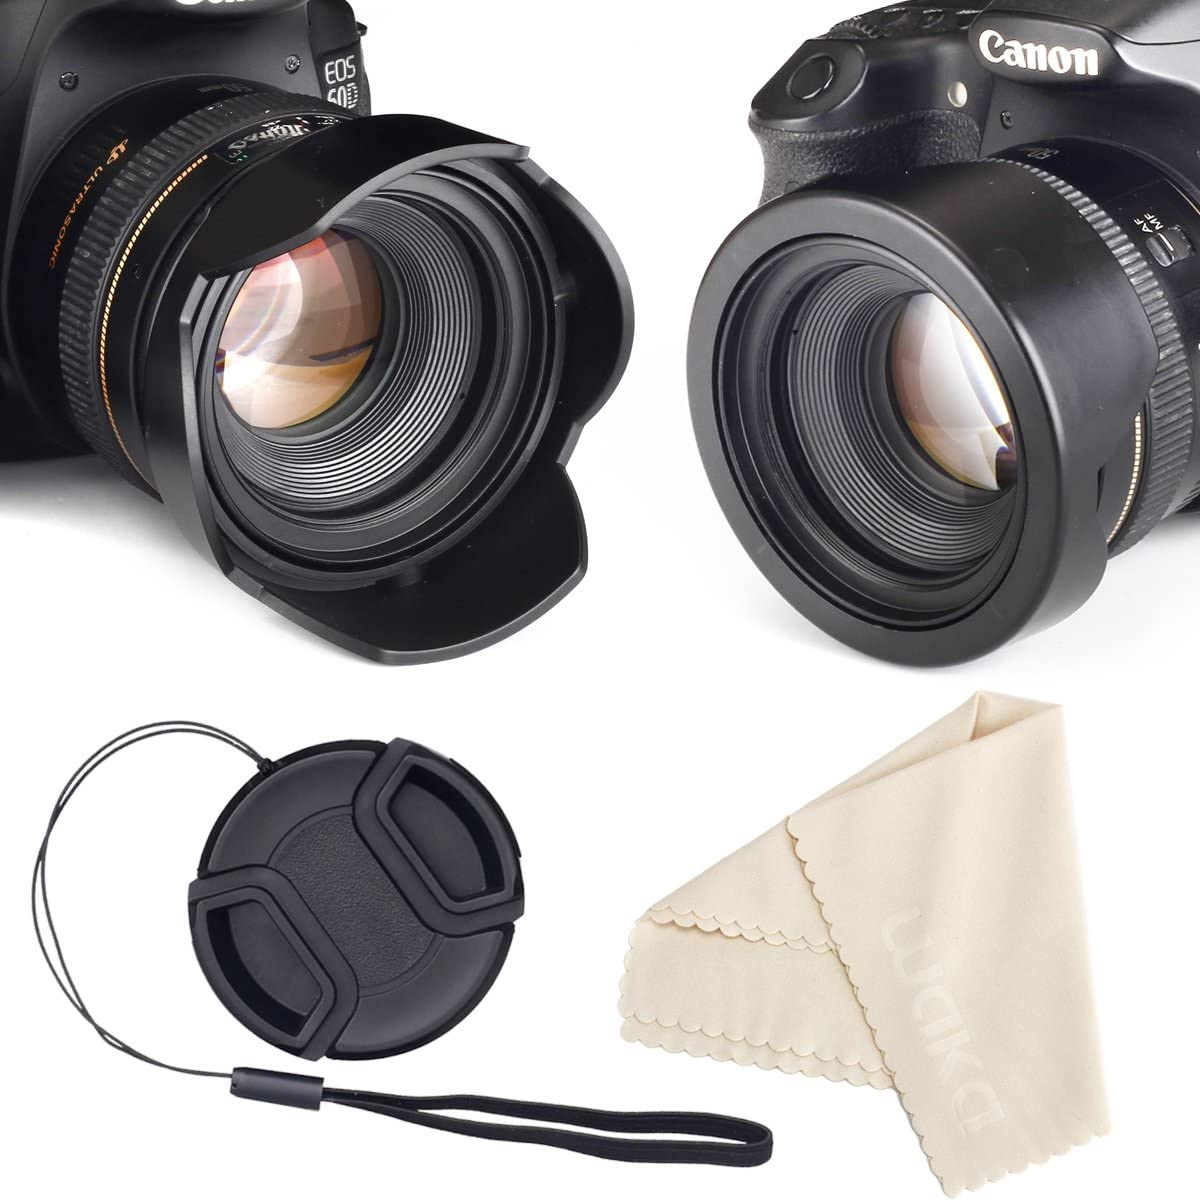 MaxLLTo Digital Lens Hood Fits 52mm threads Flower//Petal//Tulip shaped Adds impact protection to the lens element Hard Lens accessories Black Using for Blocks stray light from the lens